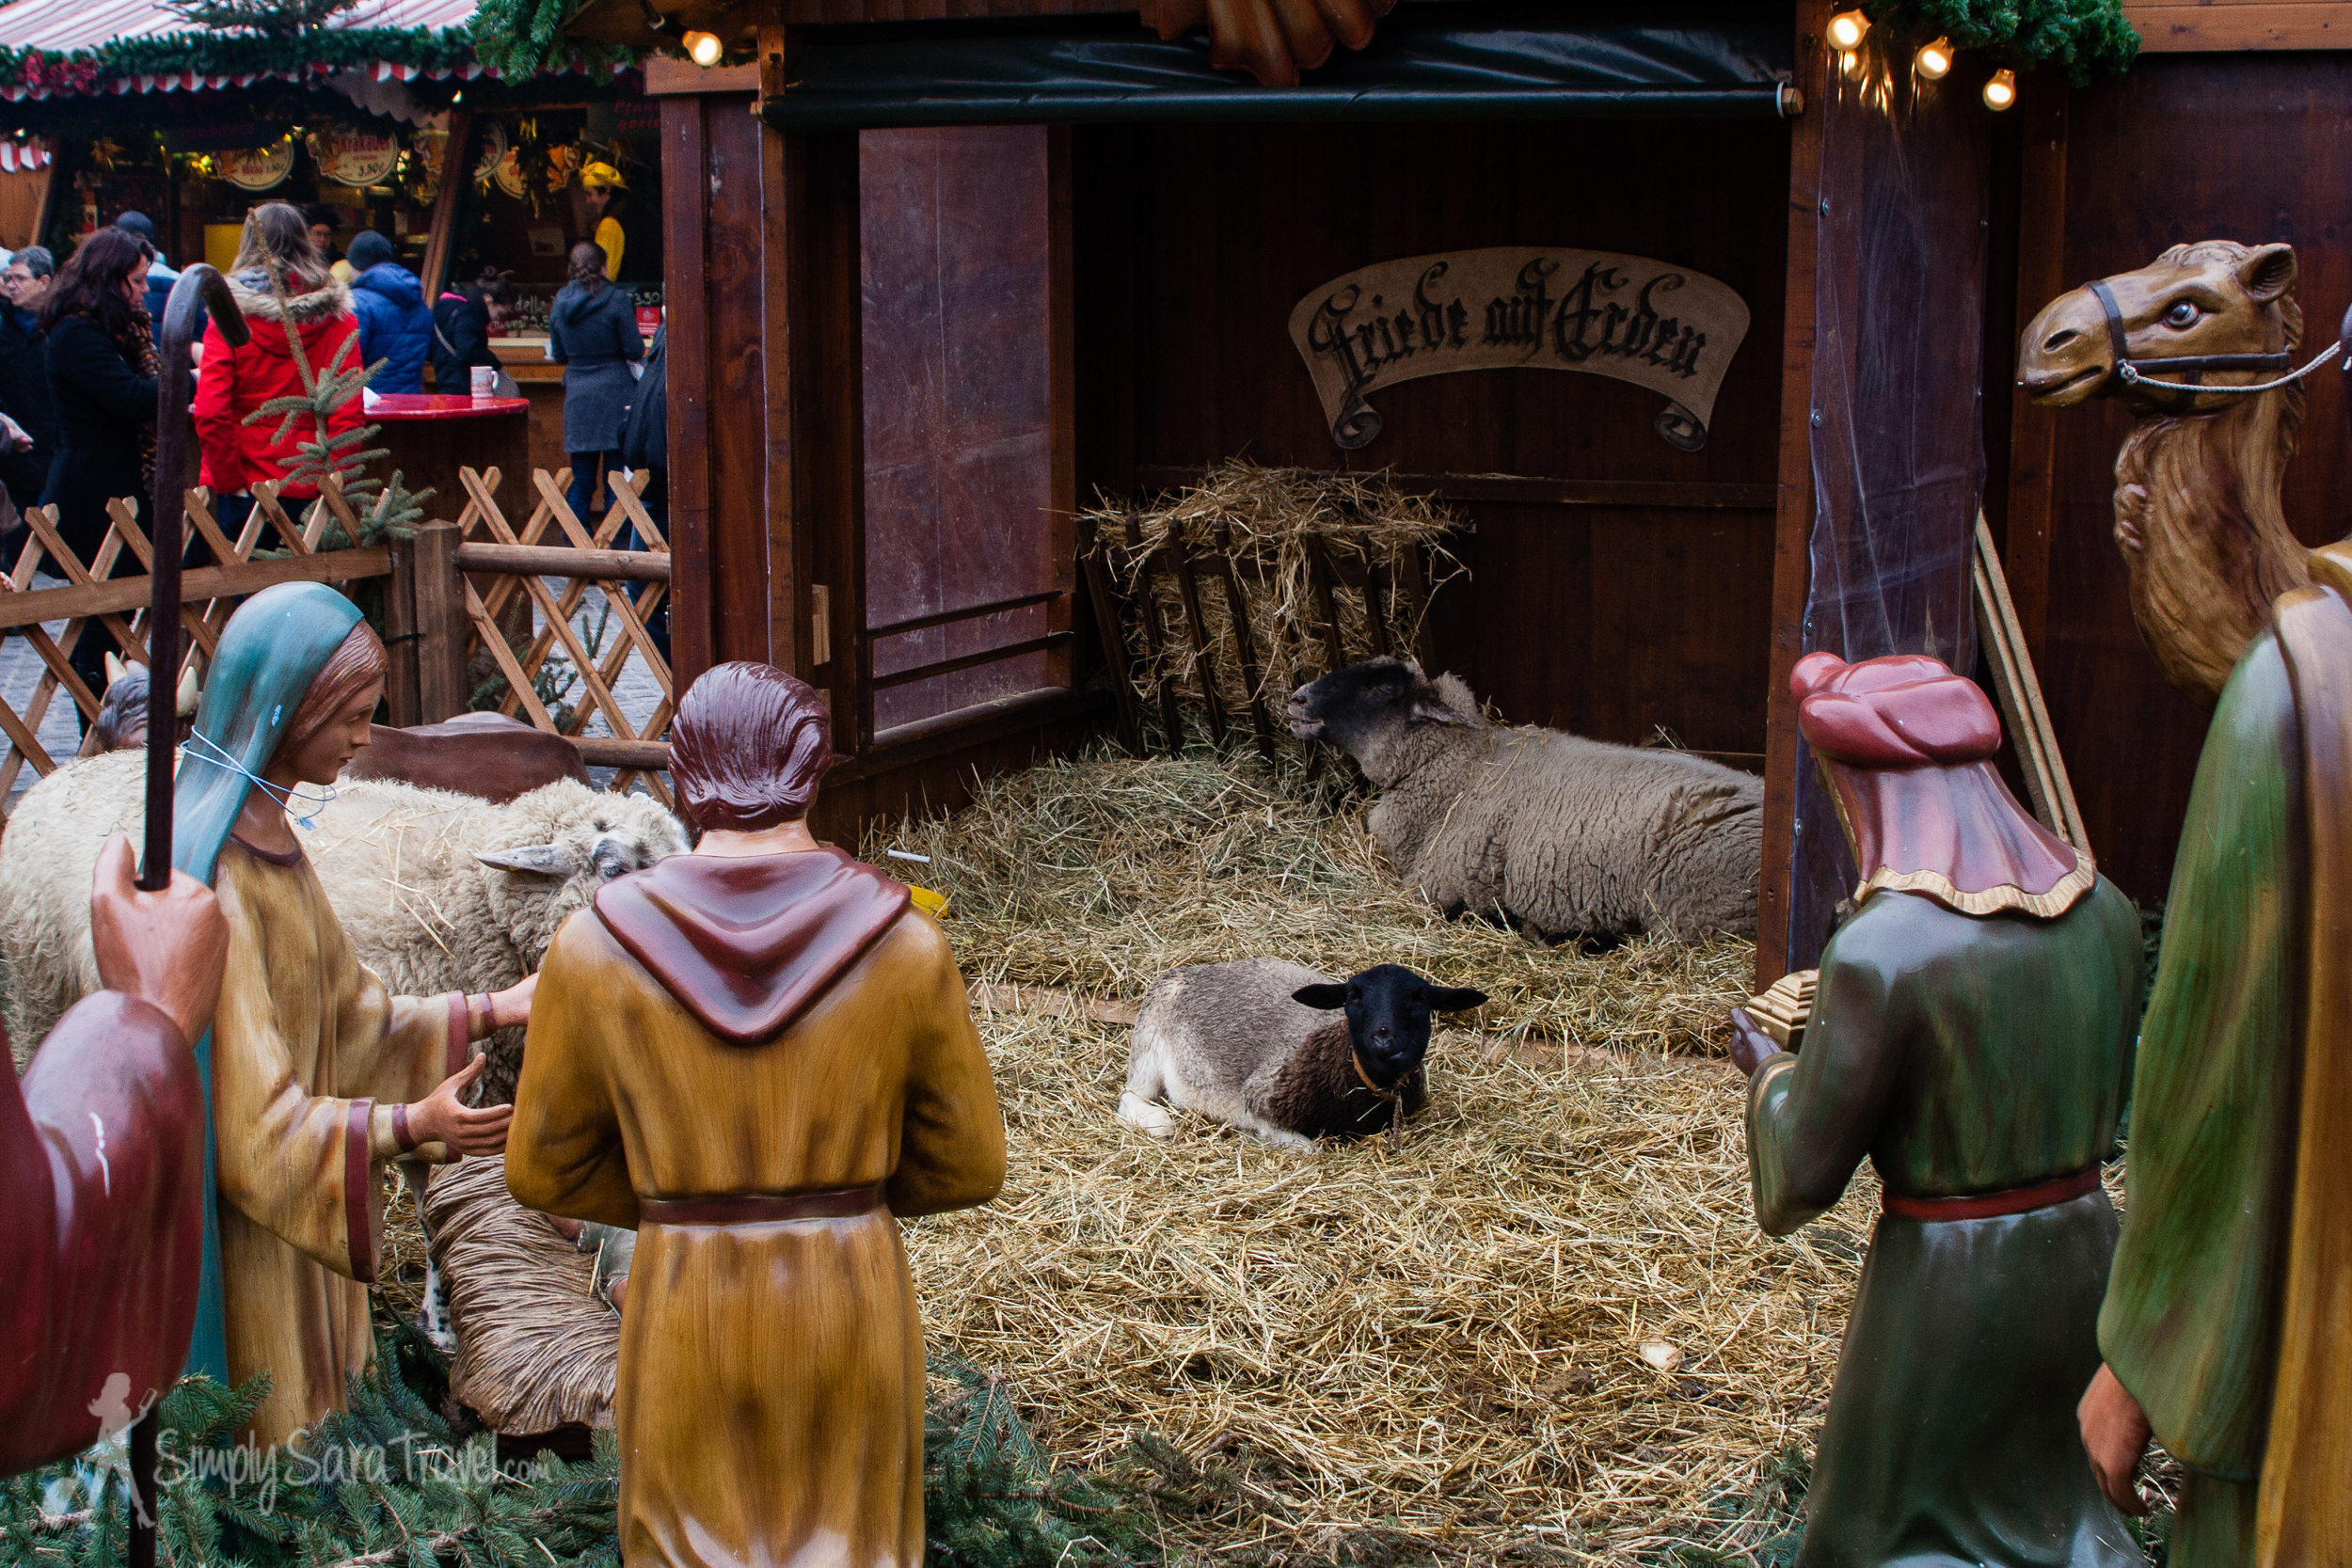 The manger in Leipzig, Germany with live animals